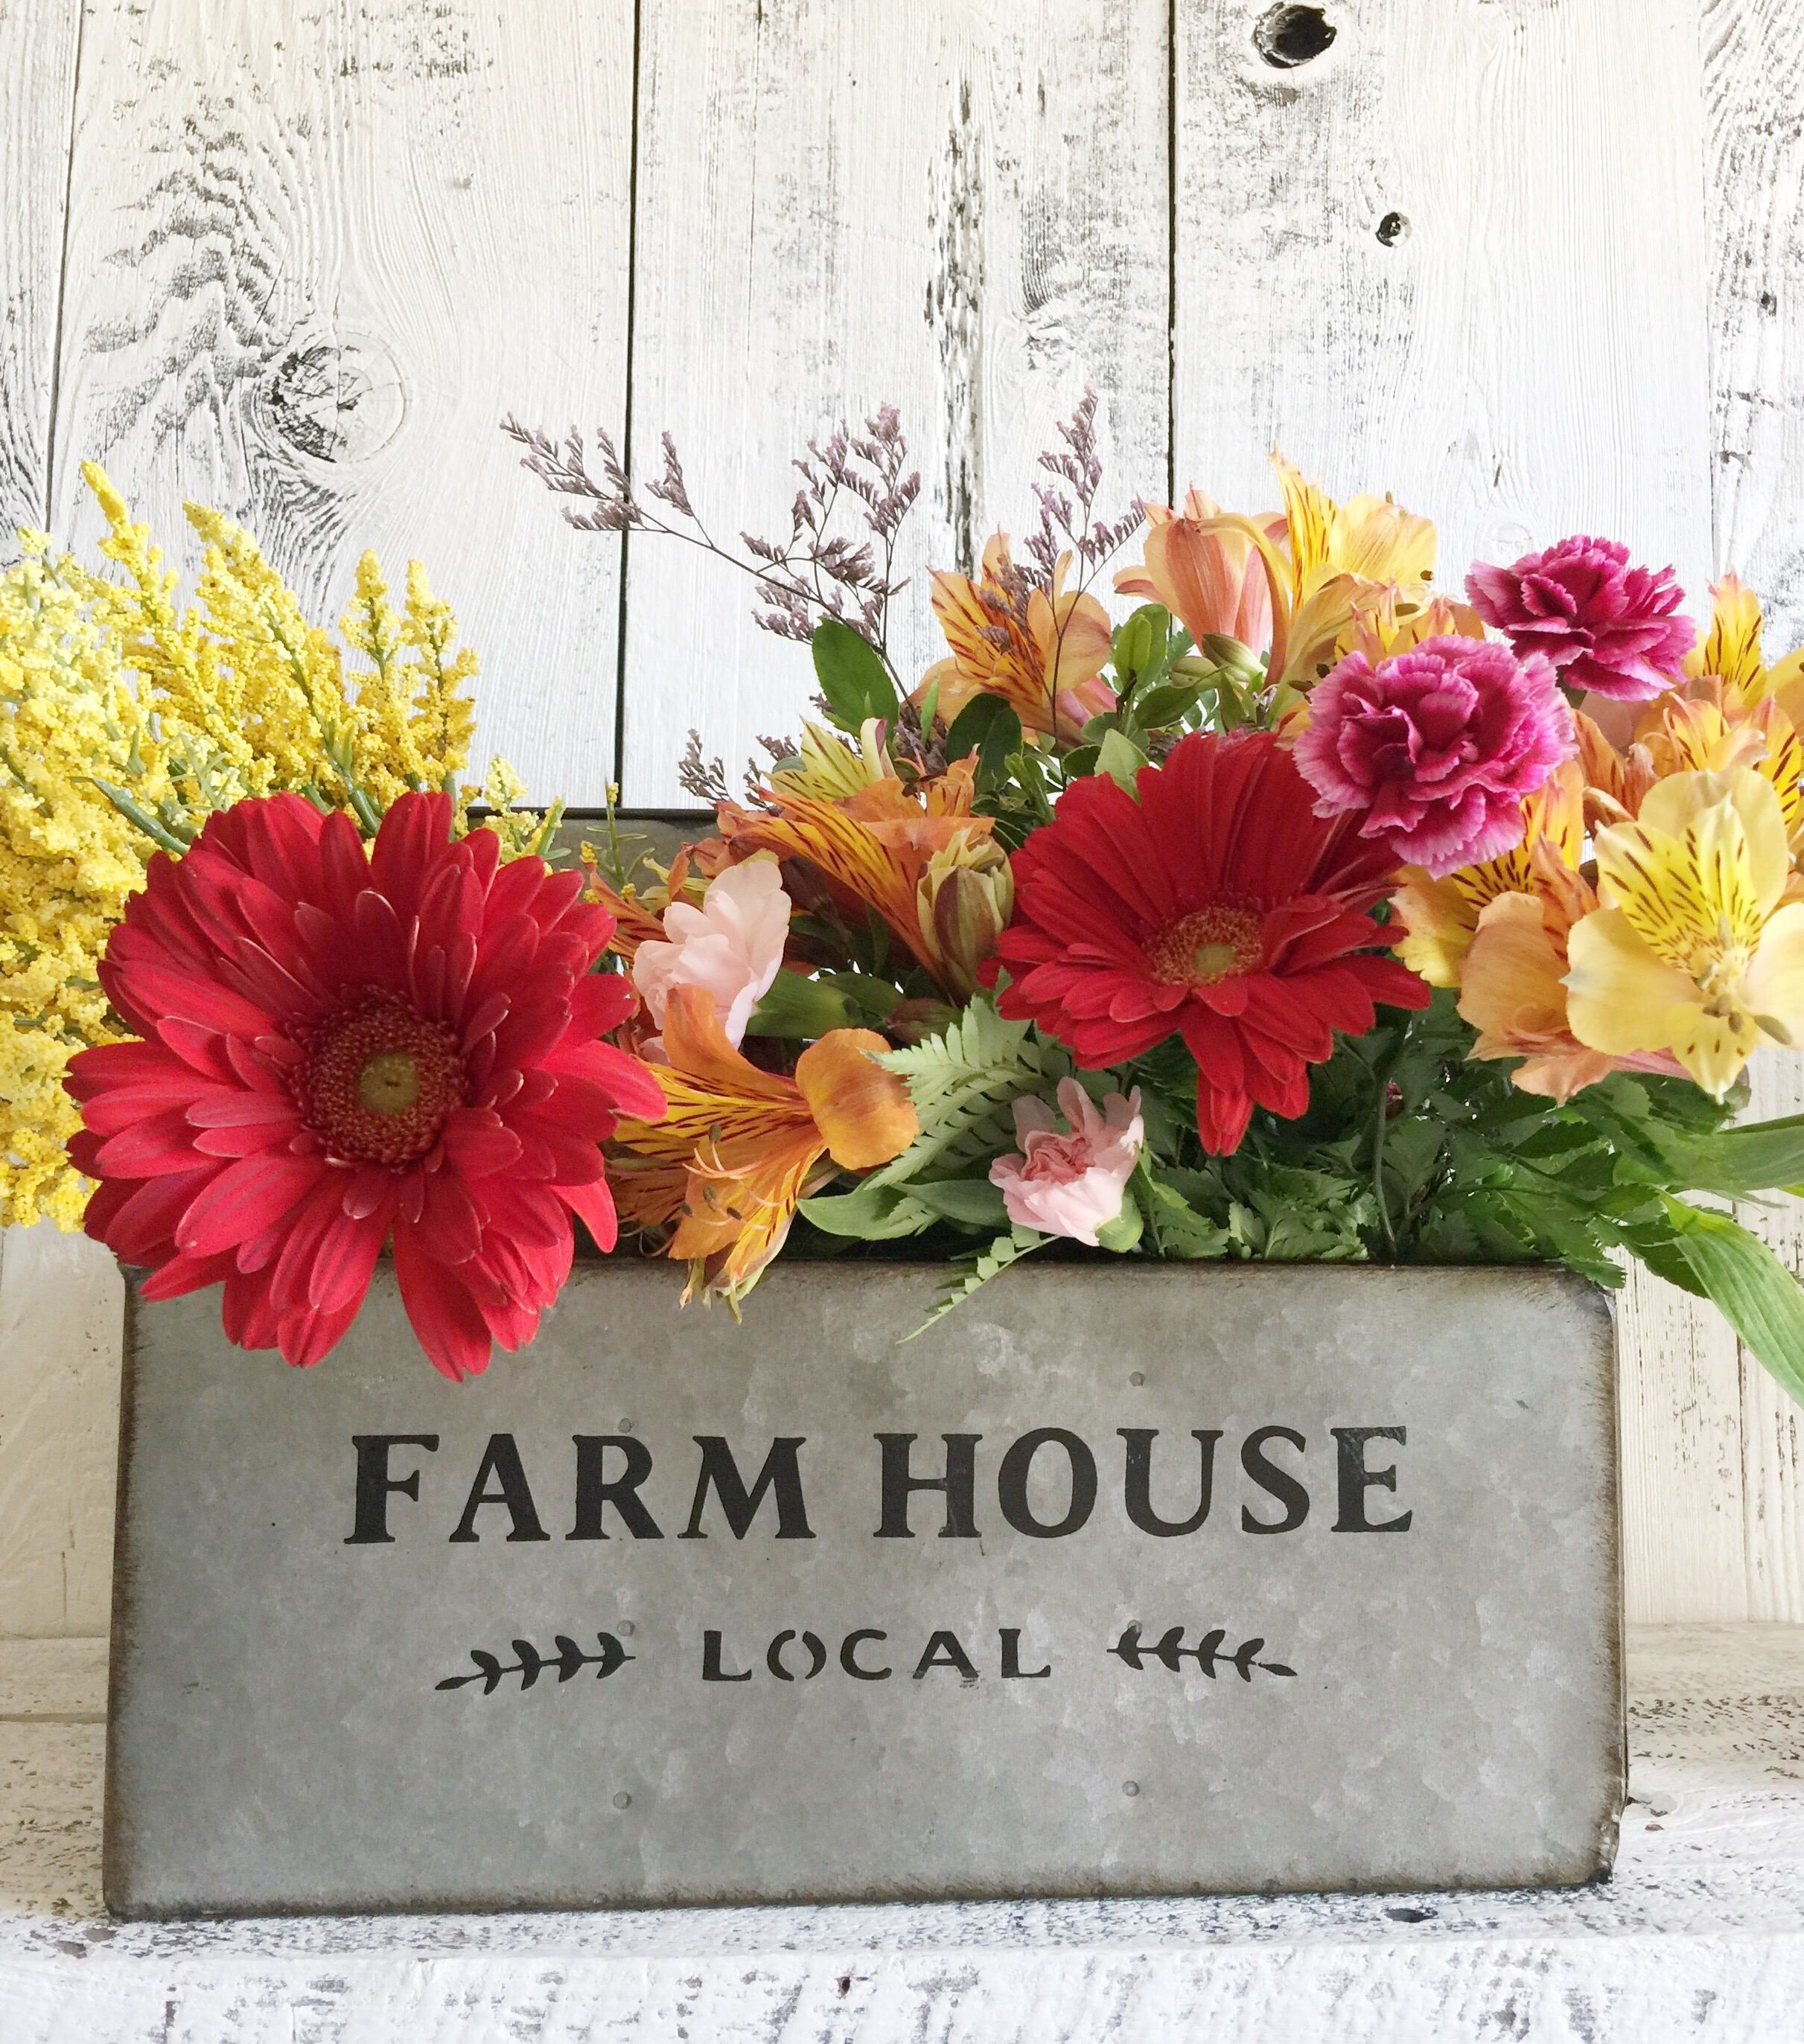 Galvanized Steel Farm House Flower Container, Bottle